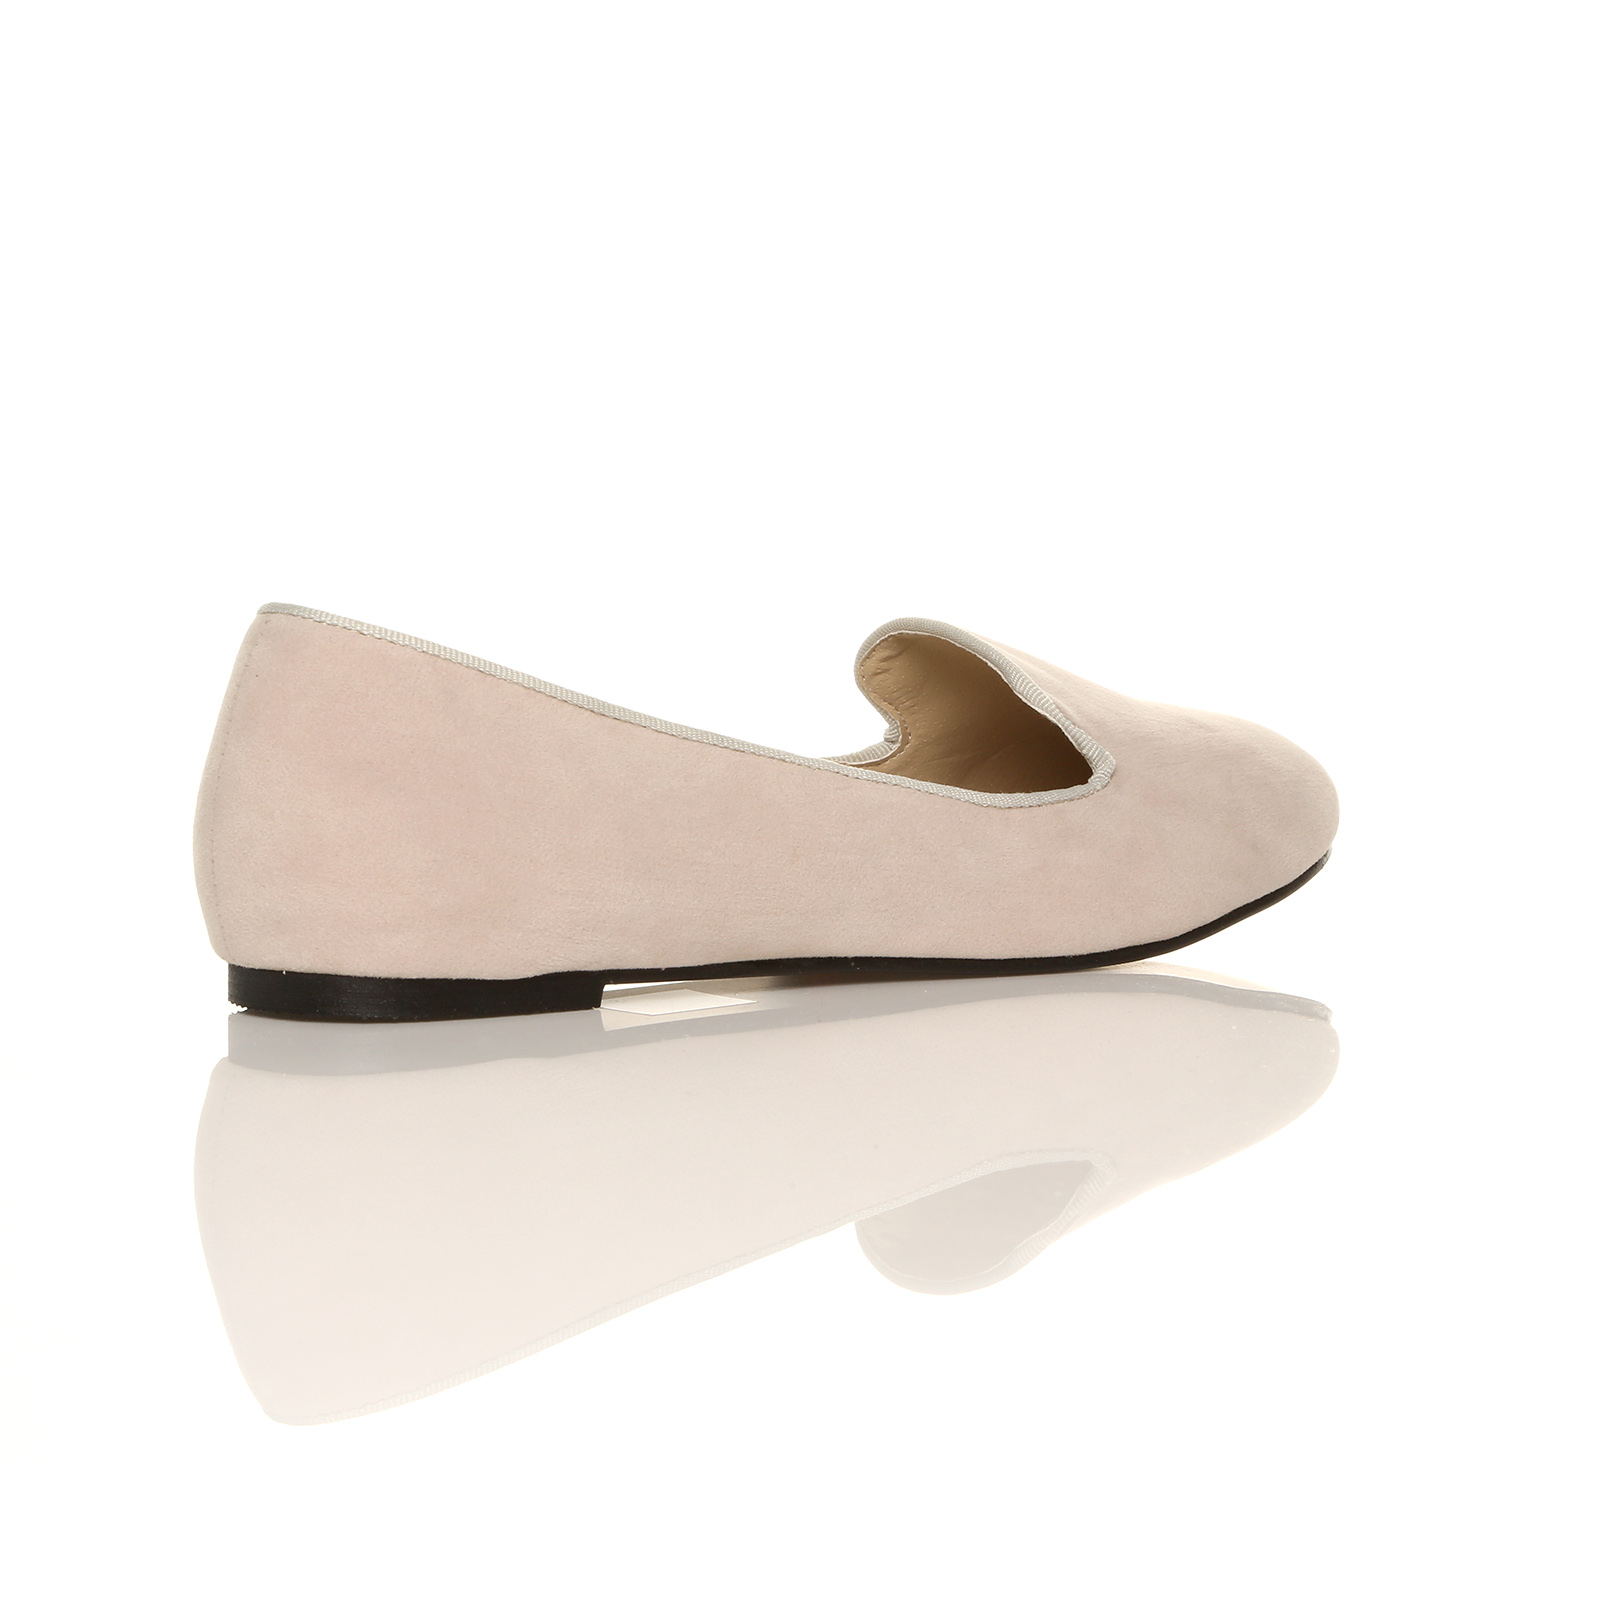 NEW-SLIP-ON-CASUAL-FLAT-SHOES-LADIES-GIRLS-FAUX-SUEDE-BALLERINAS-SIZE-3-8